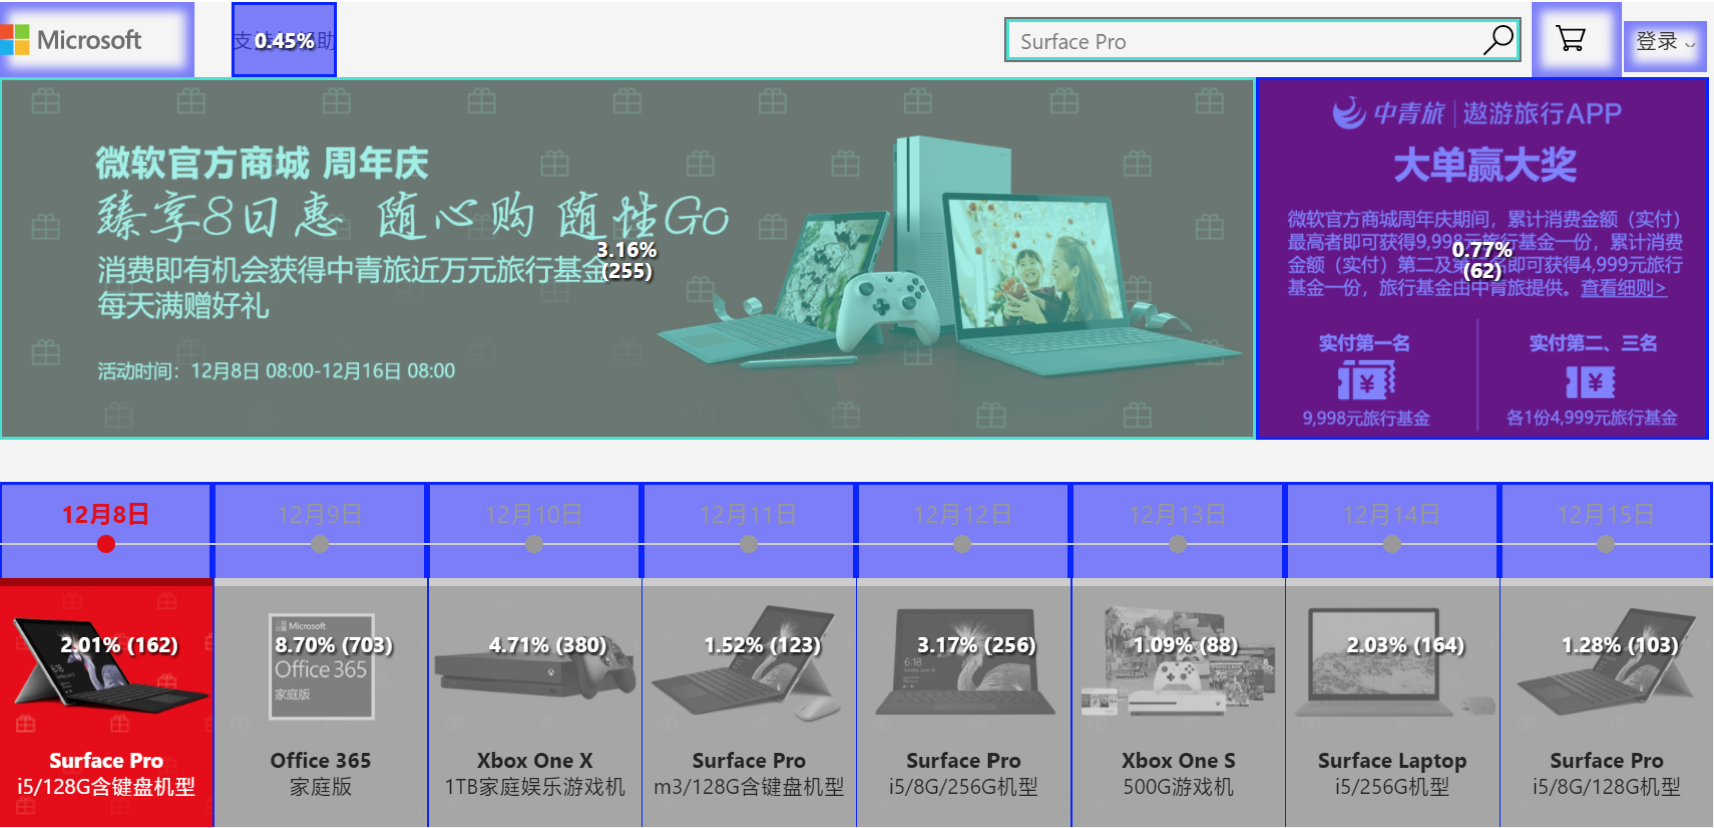 Engage function of ptengine in microsoft online store china.